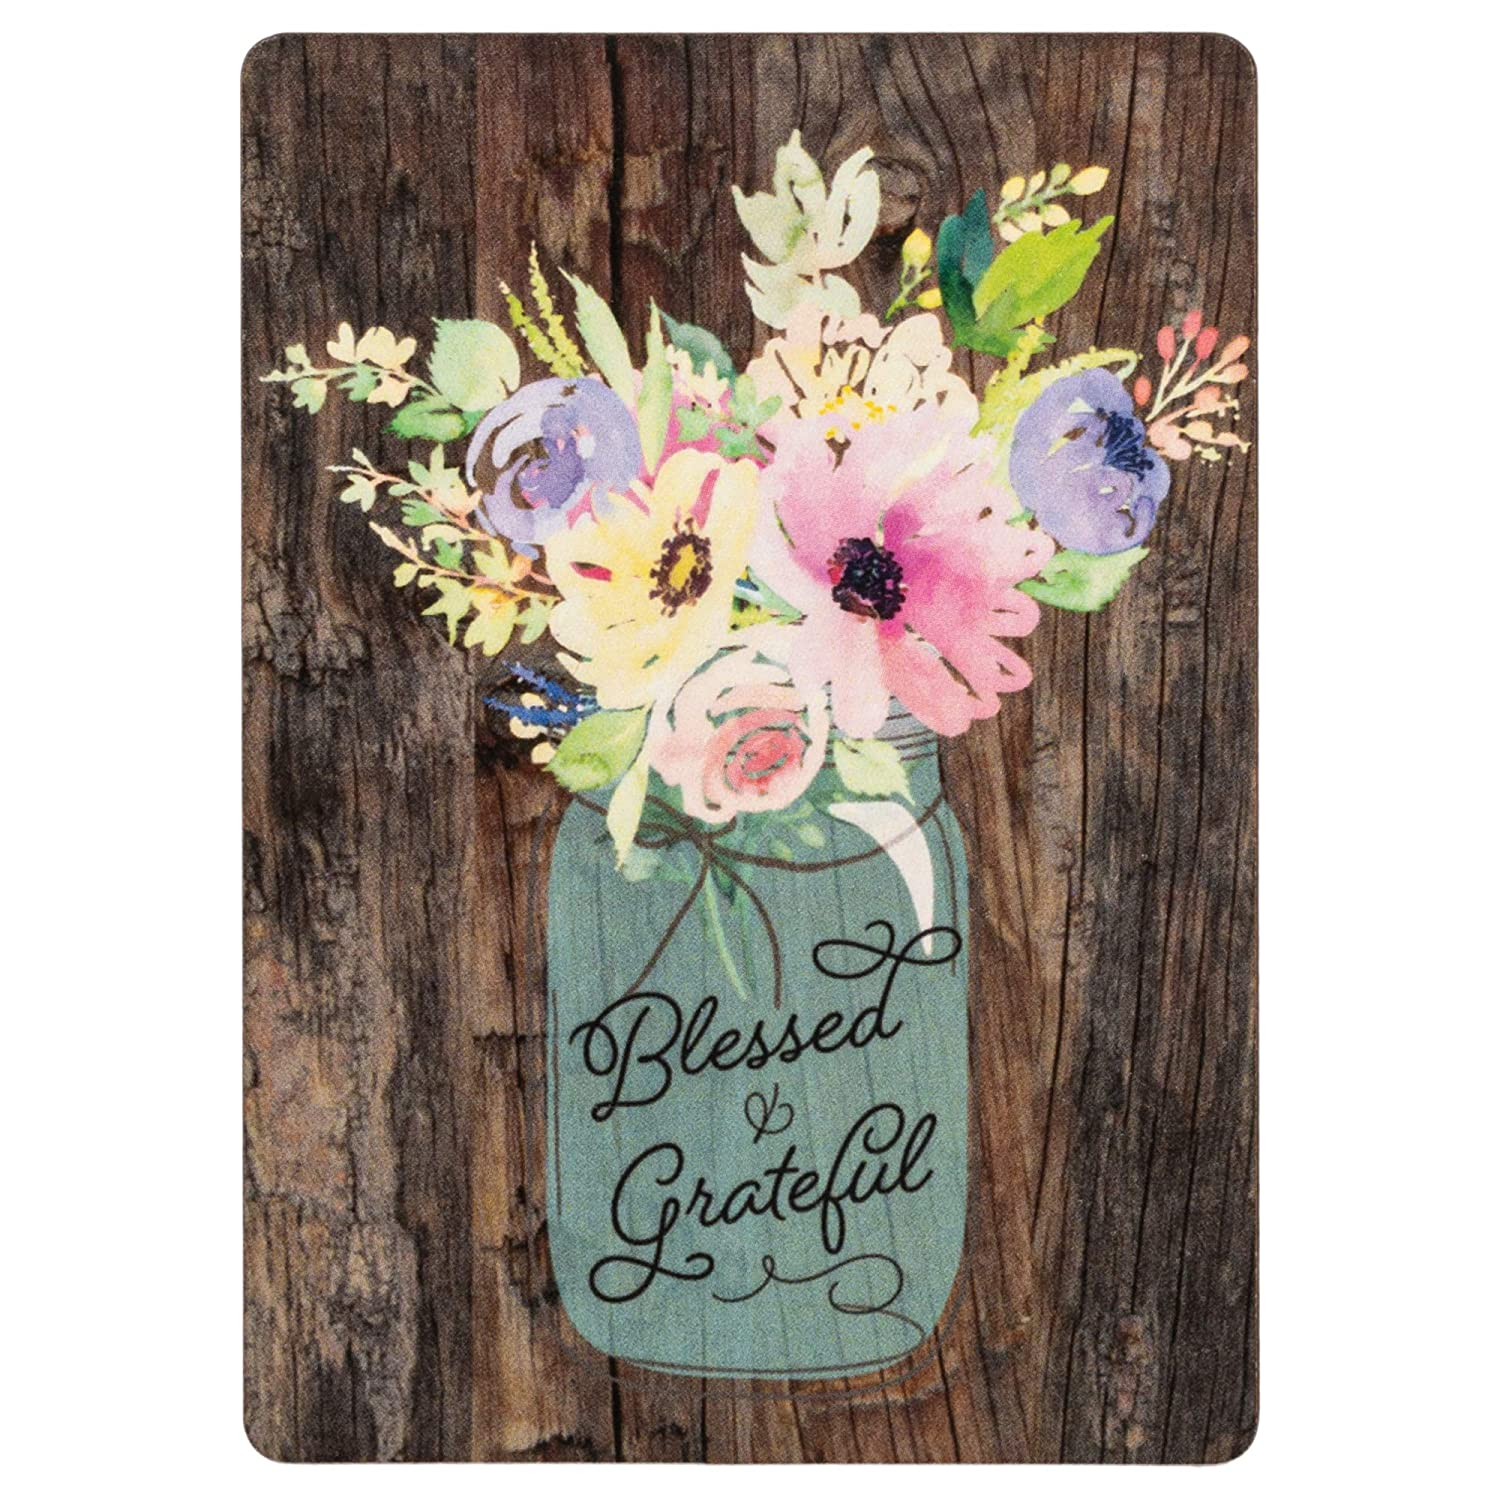 Blessed & Grateful Floral Mason Jar Wood Look 3 x 4 Inch Wood Lithograph Magnet